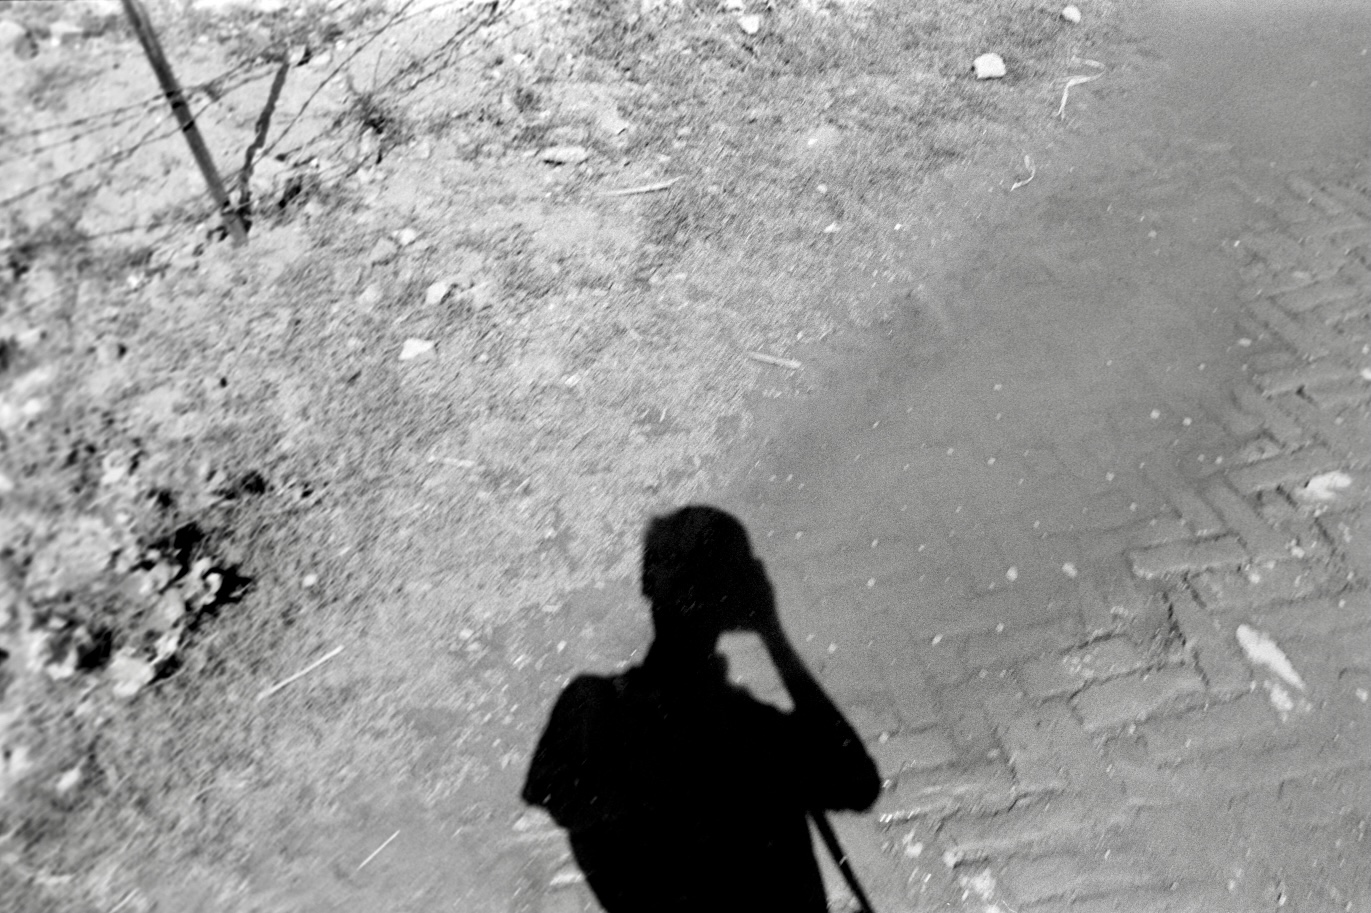 A person takes a photo of their shadow on the ground; only the top of their body is visible in shadow